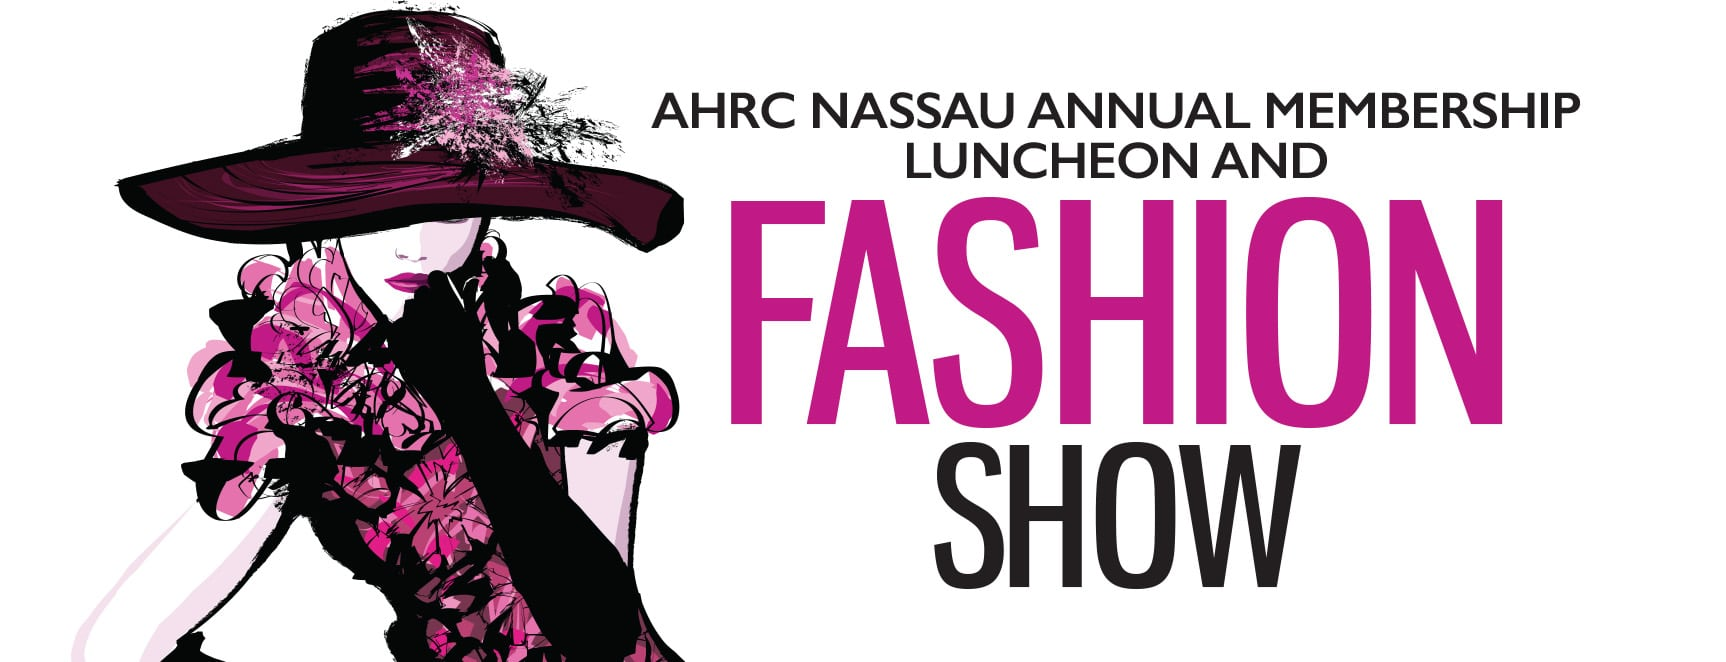 AHRC Membership Luncheon and Fashion Show @ AHRC Brookville Mansion | Glen Head | New York | United States